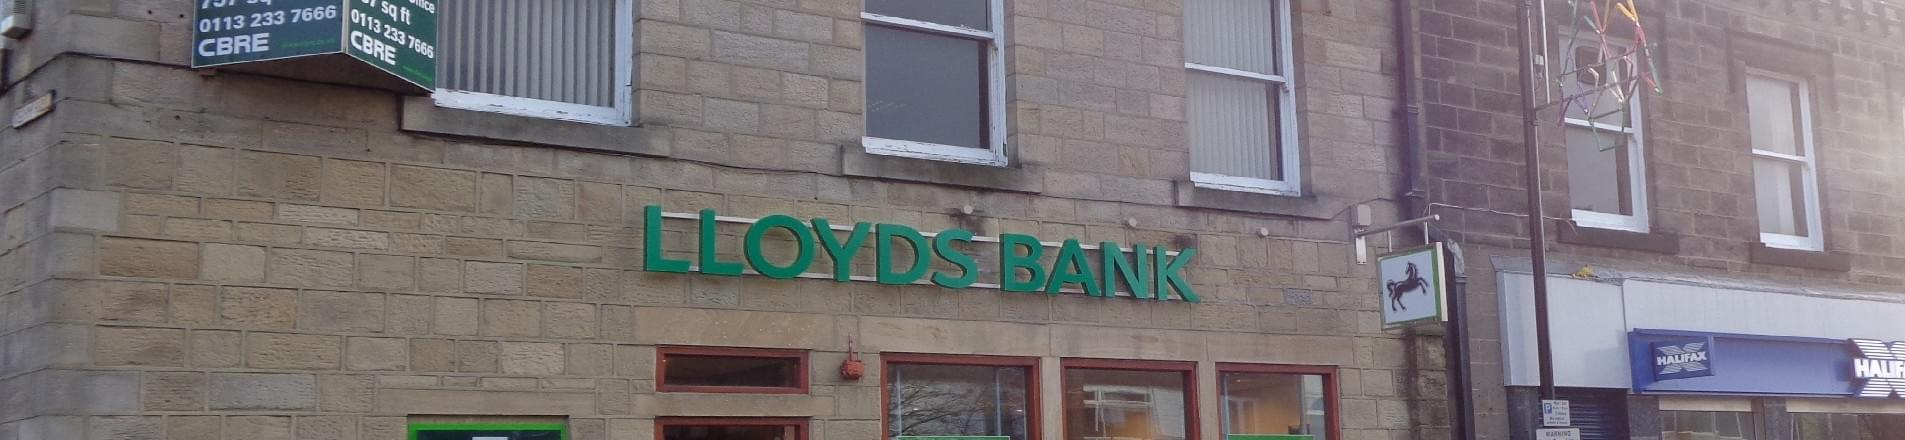 Lloyds Banking Group show commitment to Pride